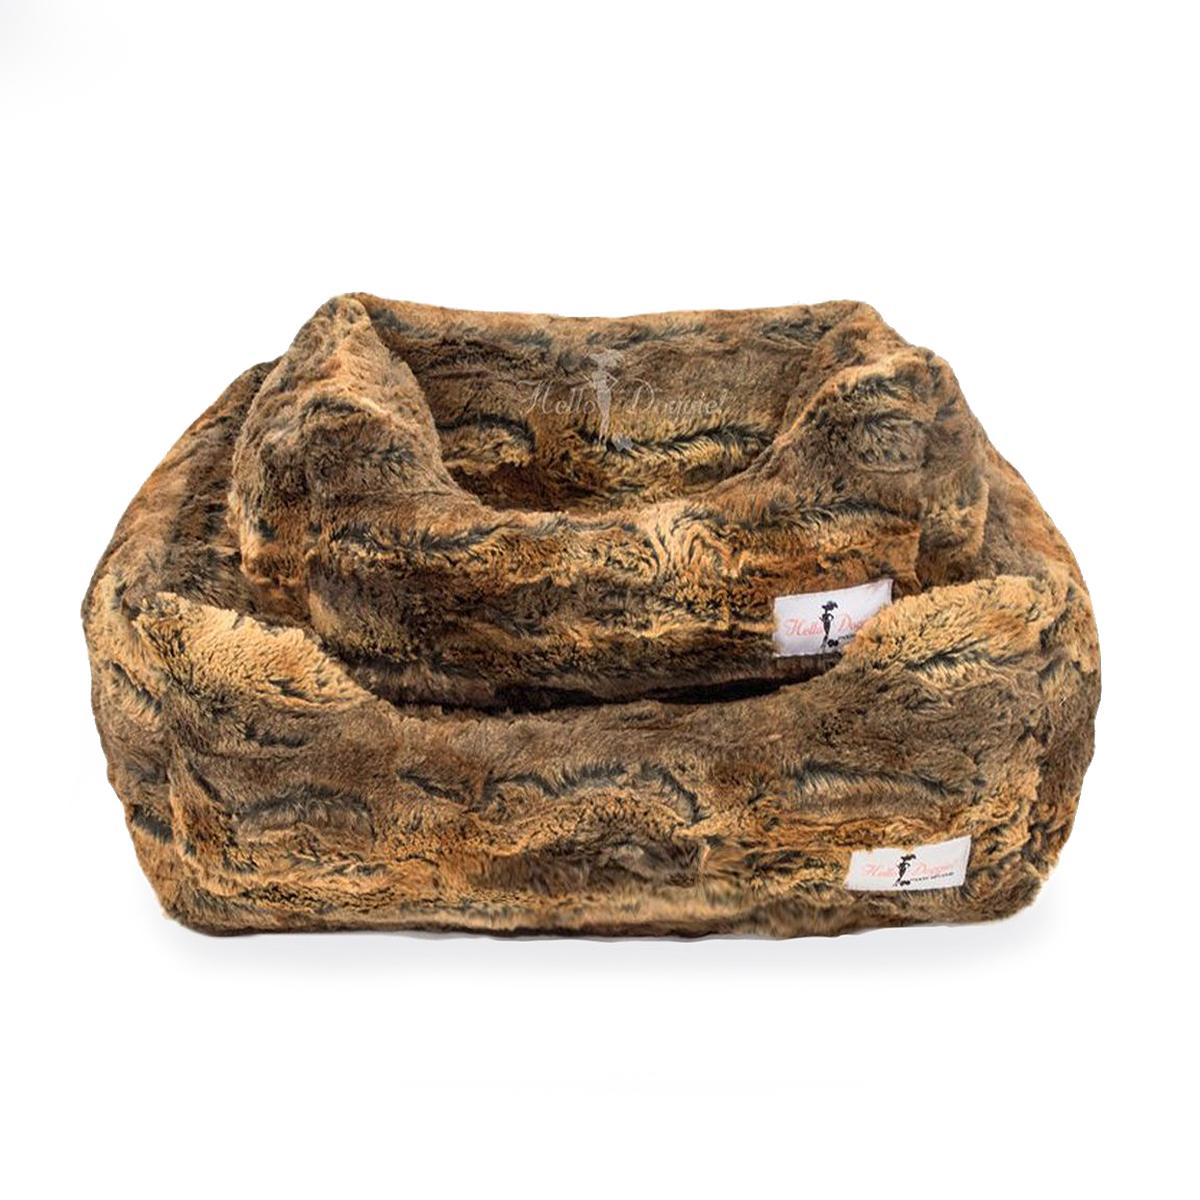 Sensational Animal Print Luxe Dog Bed By Hello Doggie Red Fox Ocoug Best Dining Table And Chair Ideas Images Ocougorg